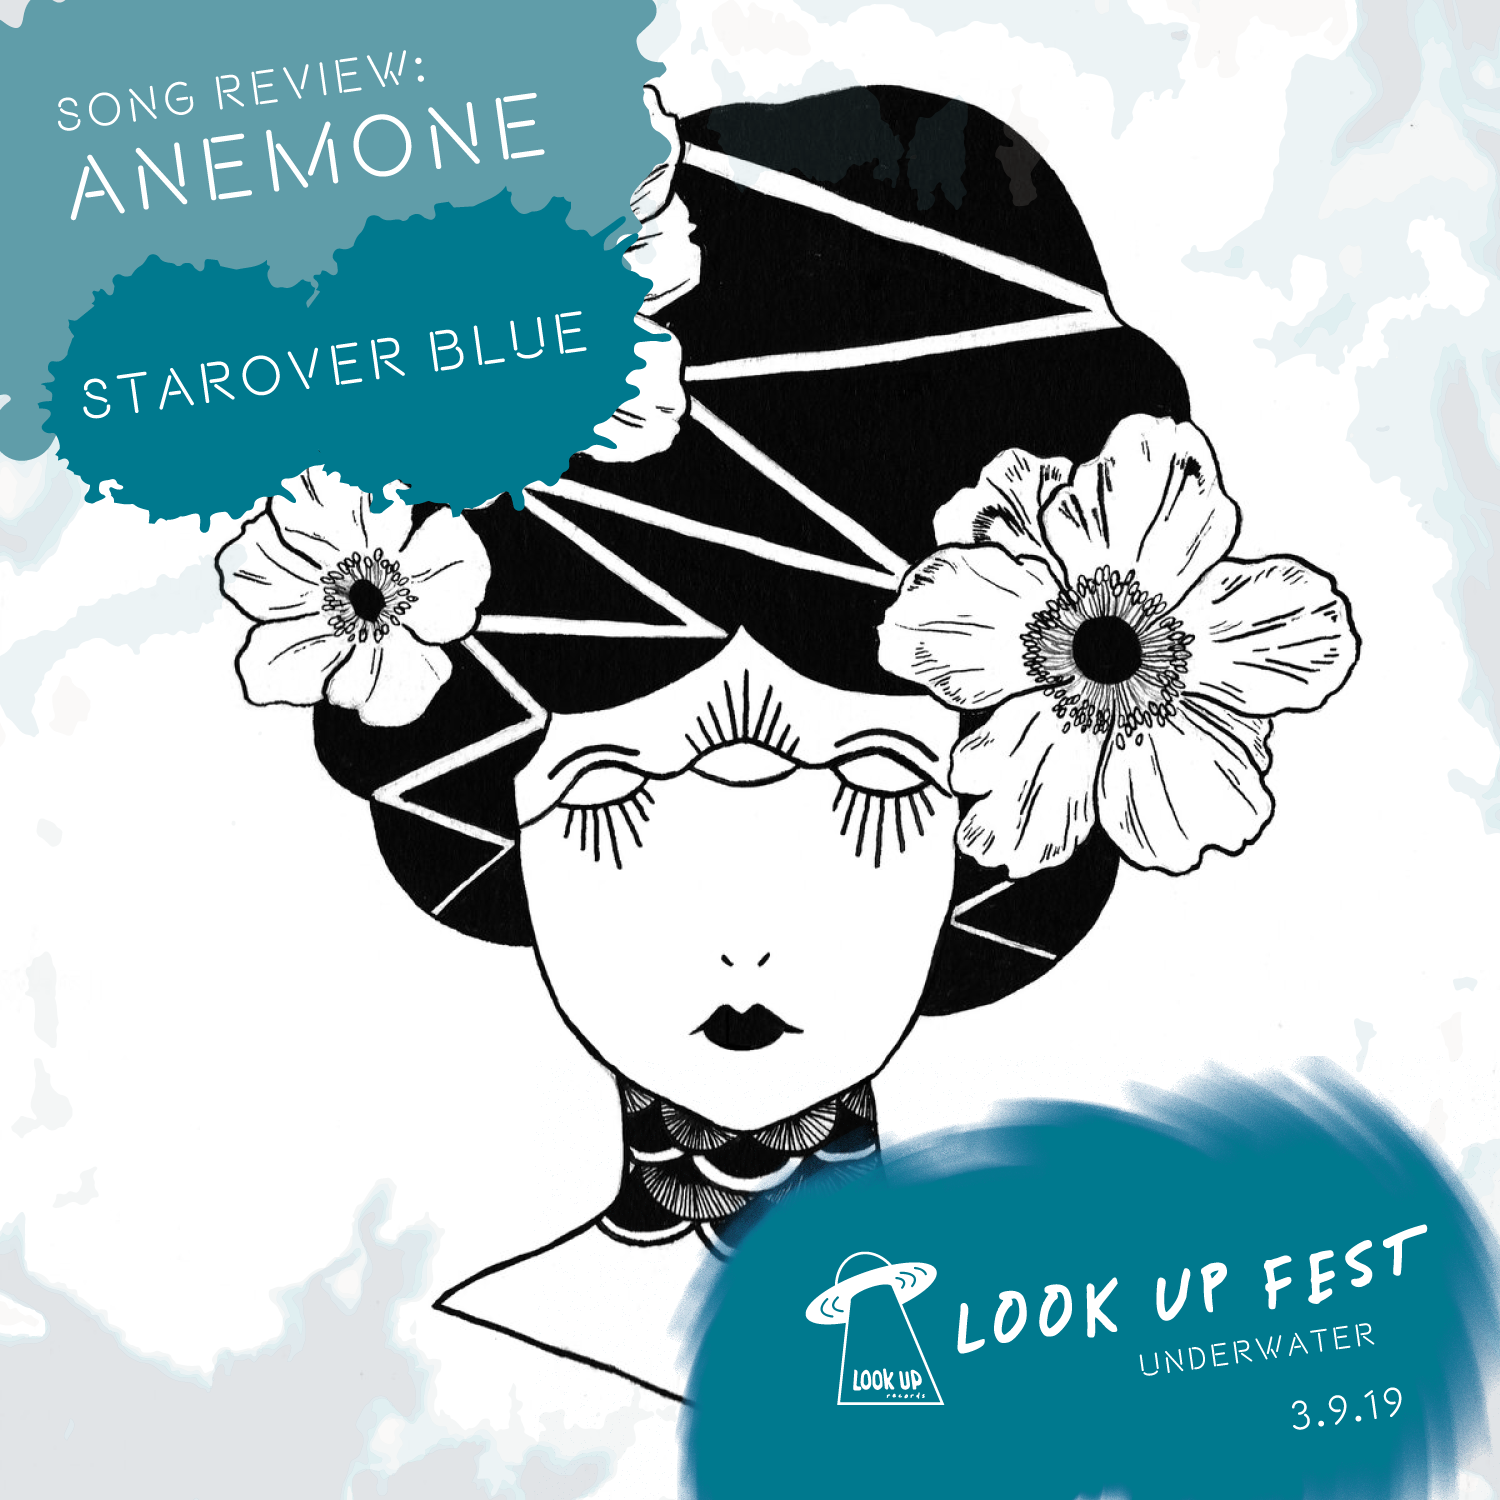 Anemone-starover-blue-single-lufu-look-up.png